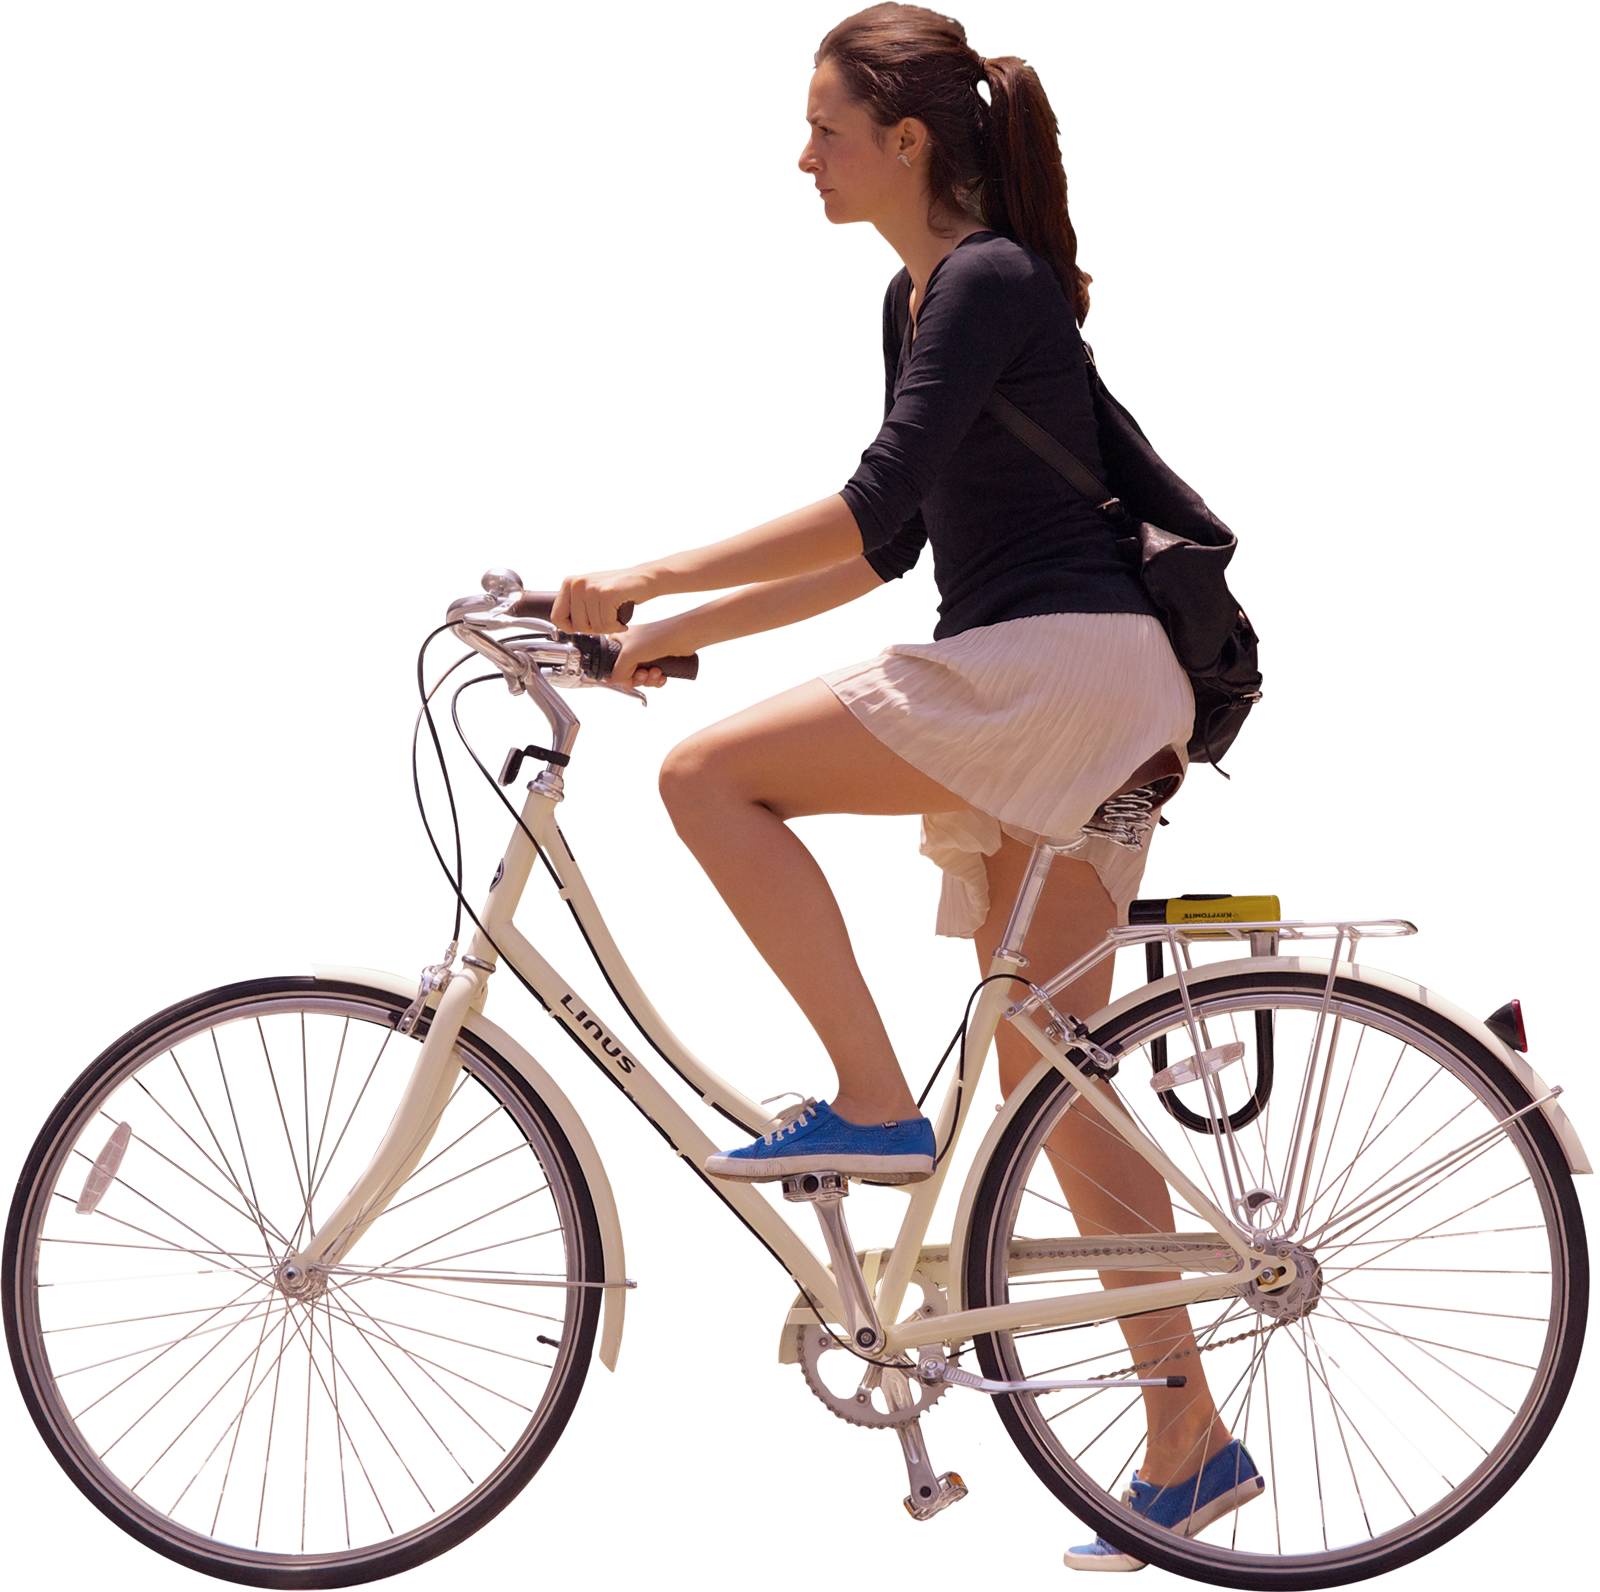 woman waiting on bike, side on | Photoshop silhouette for ...